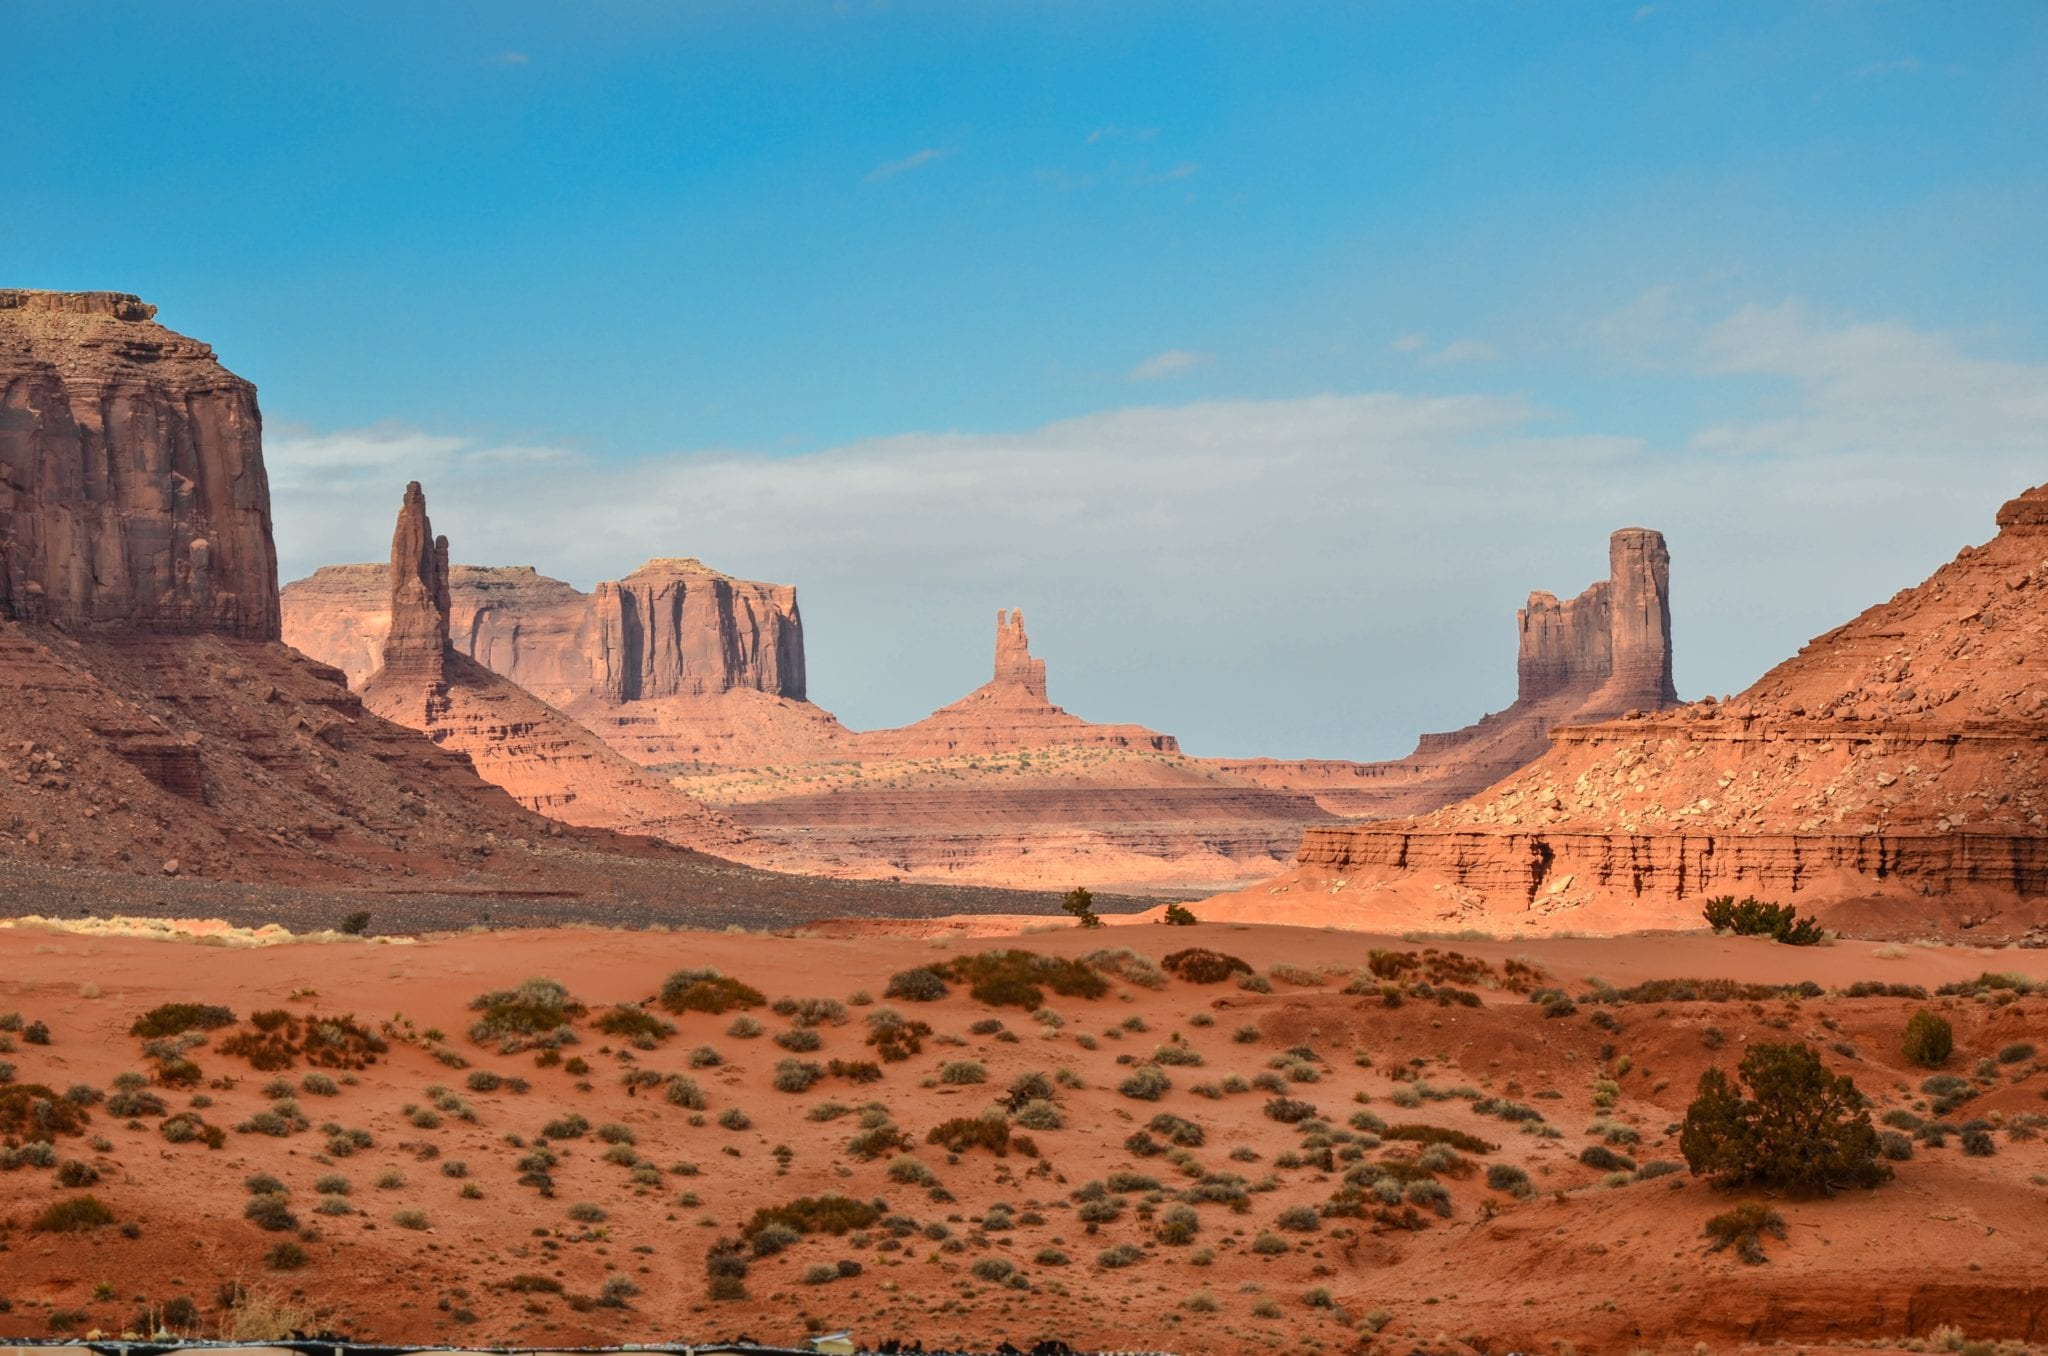 monument valley rock formations cover